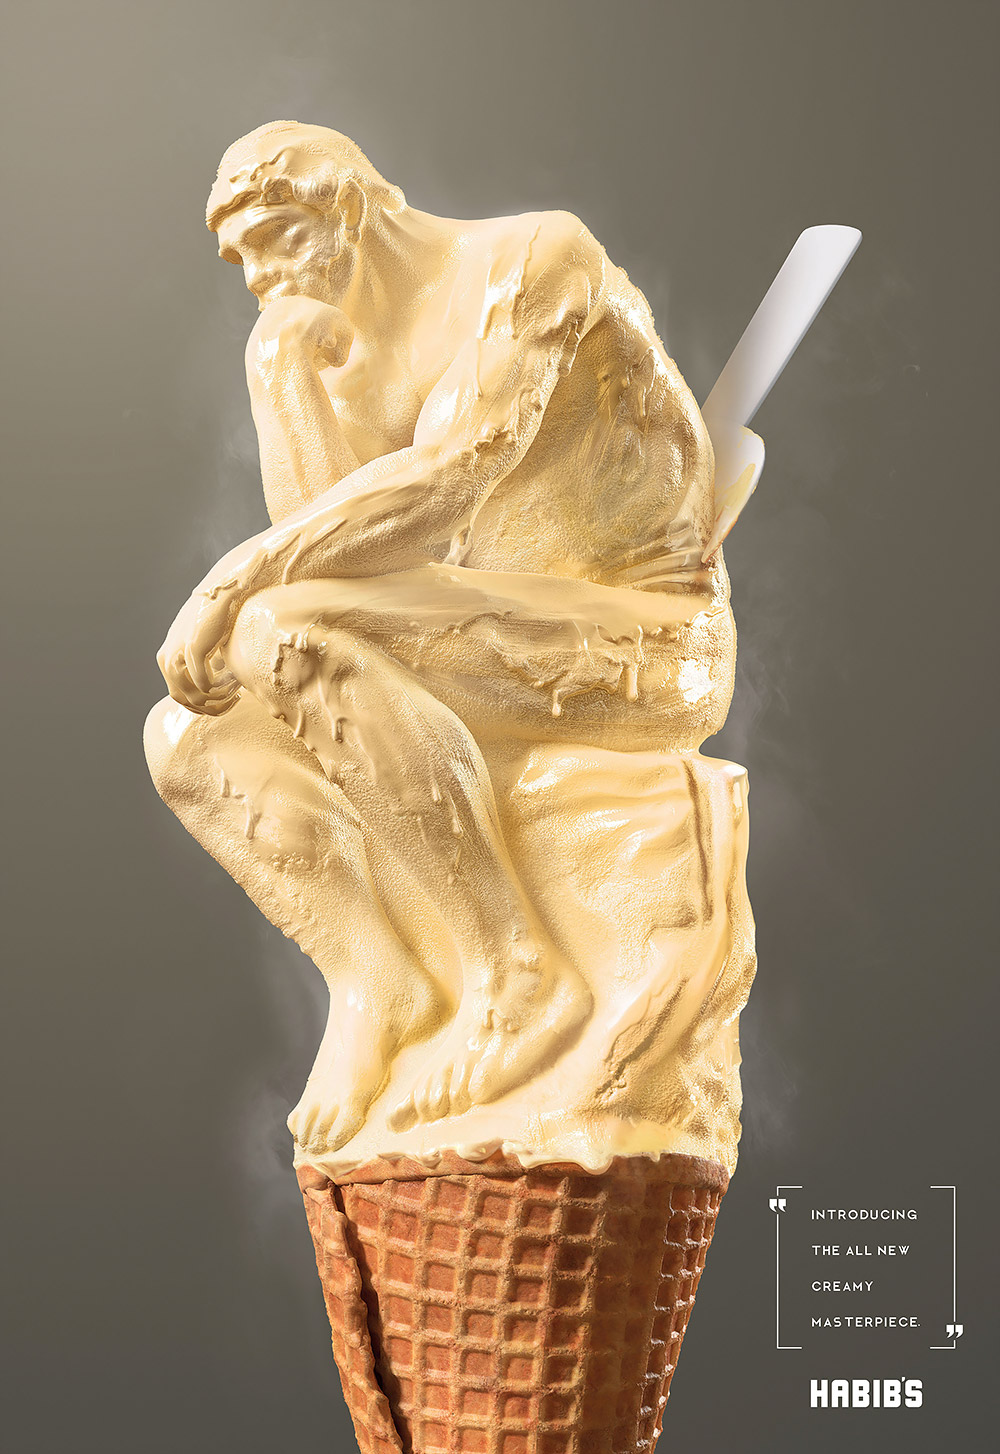 Brilliant Advertising Posters for Artisanal Ice Cream